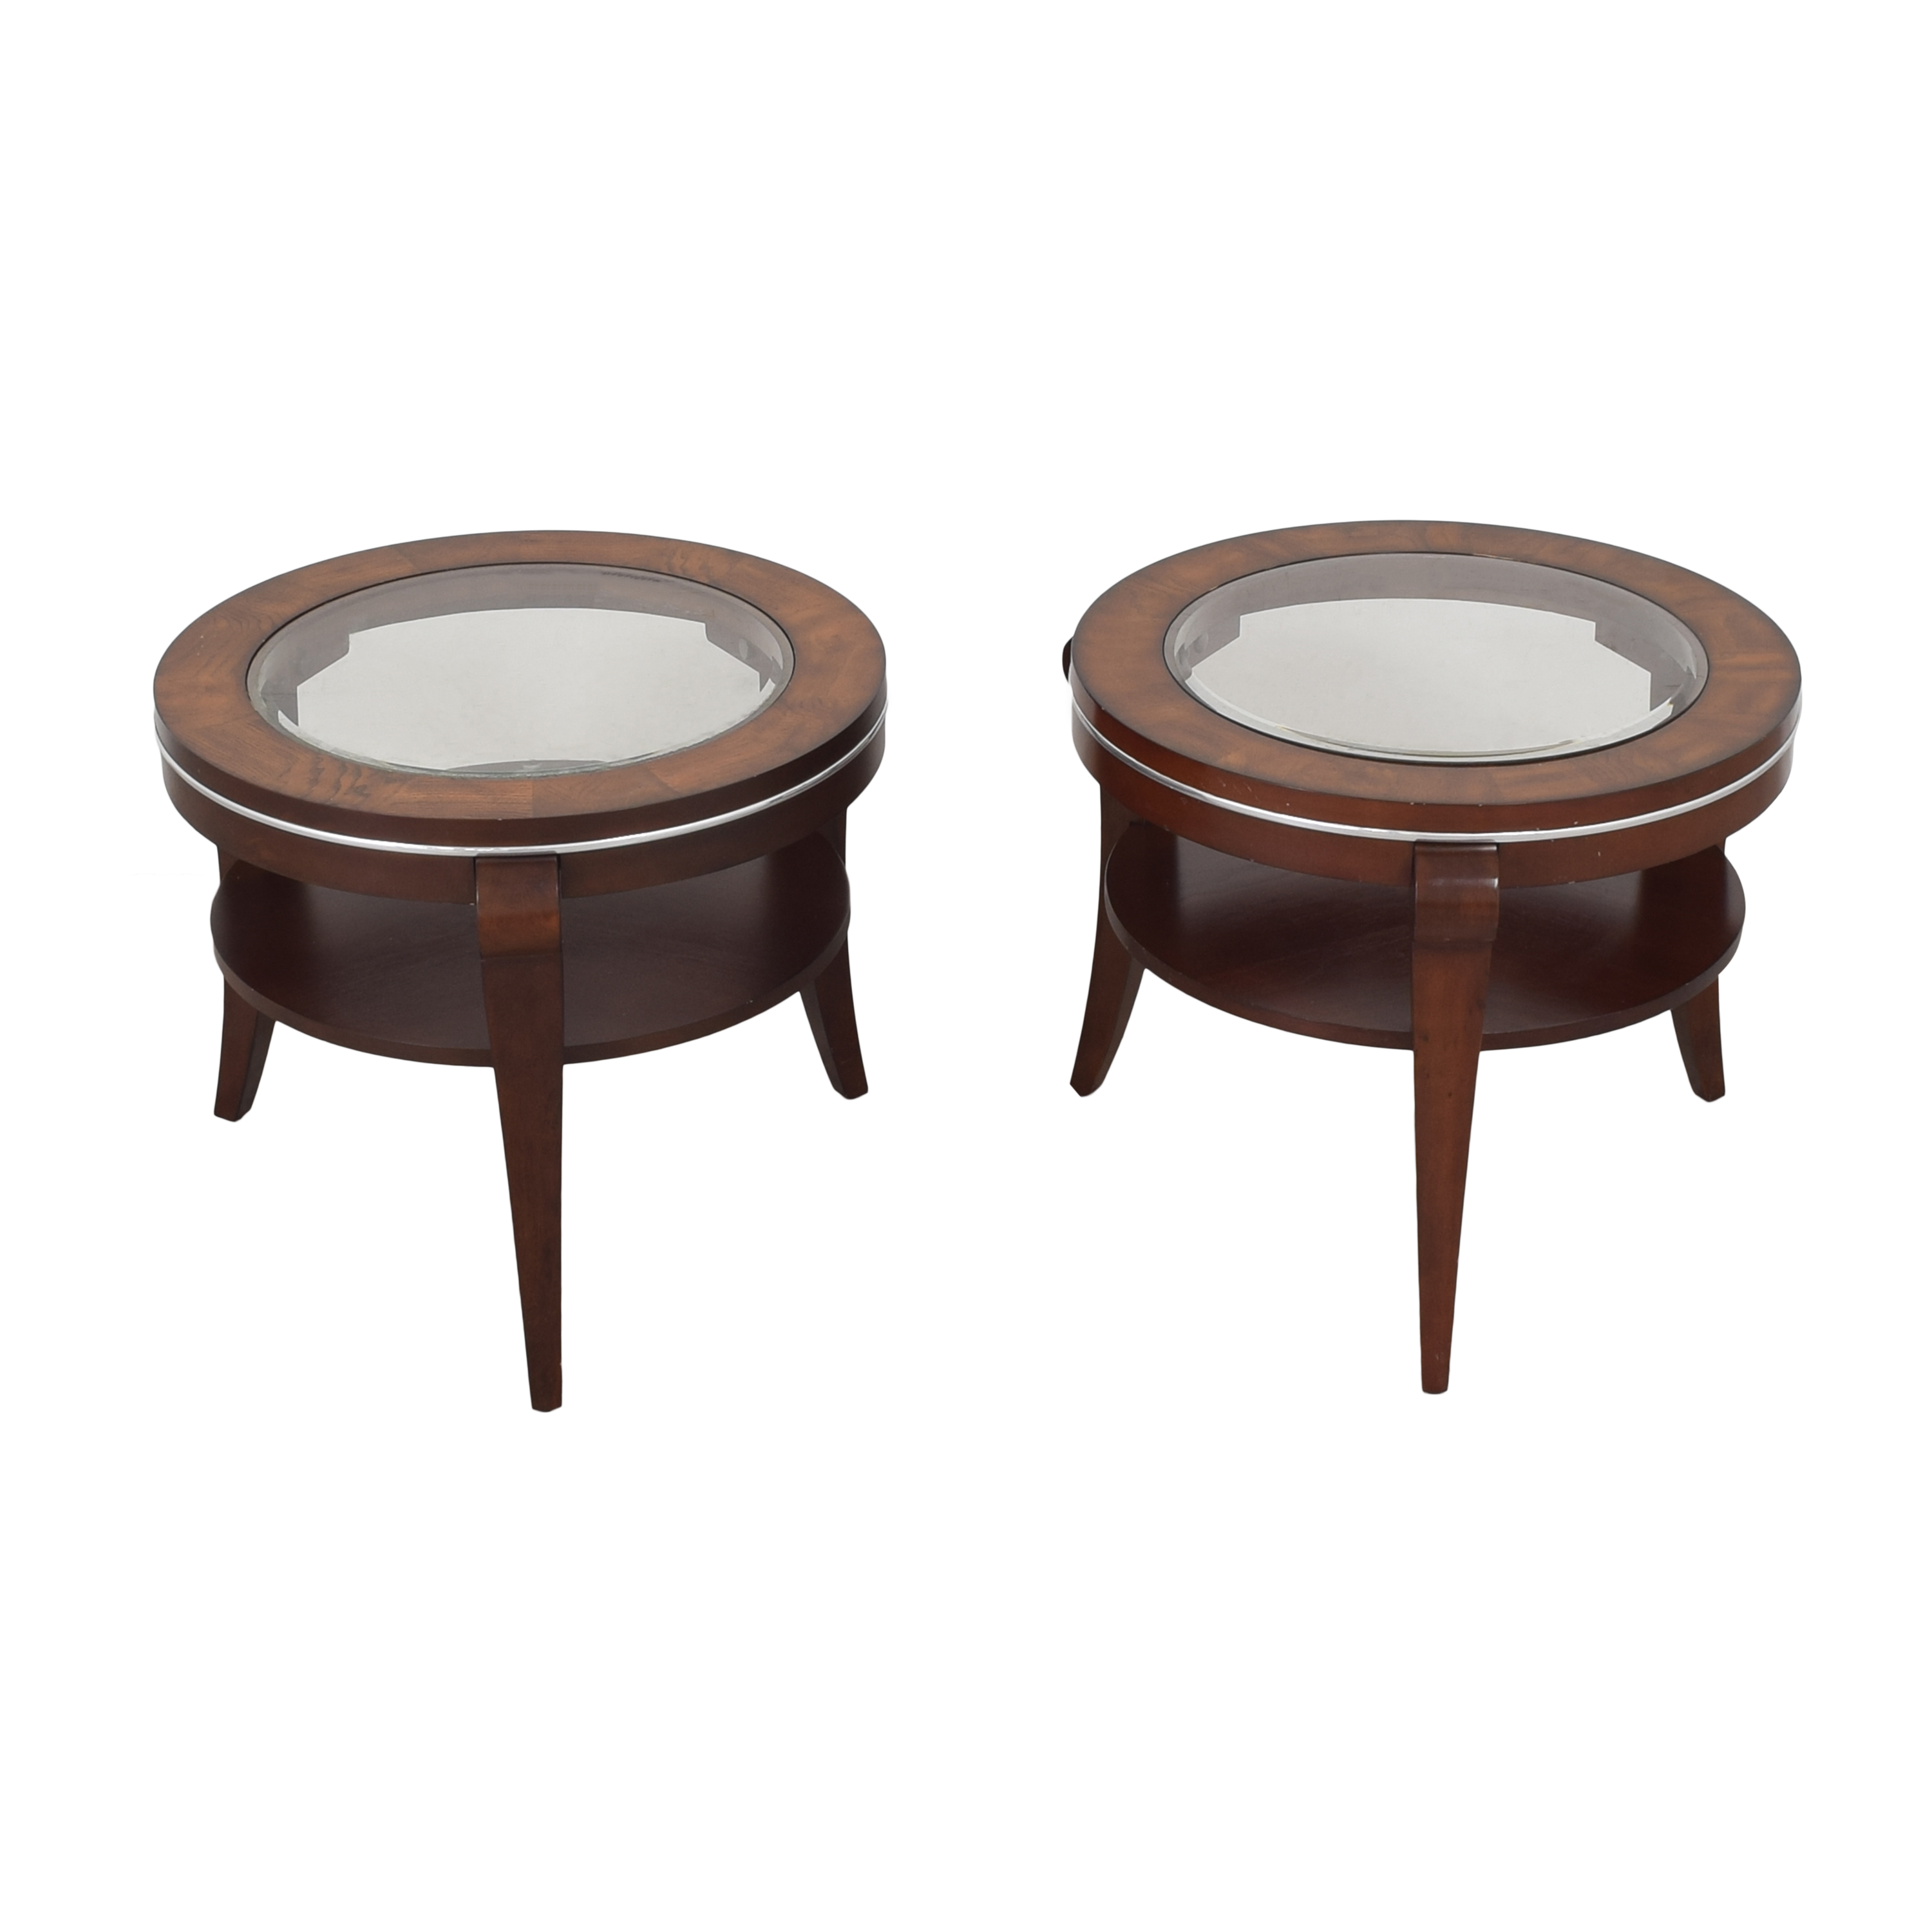 Raymour & Flanigan Round End Tables / Tables